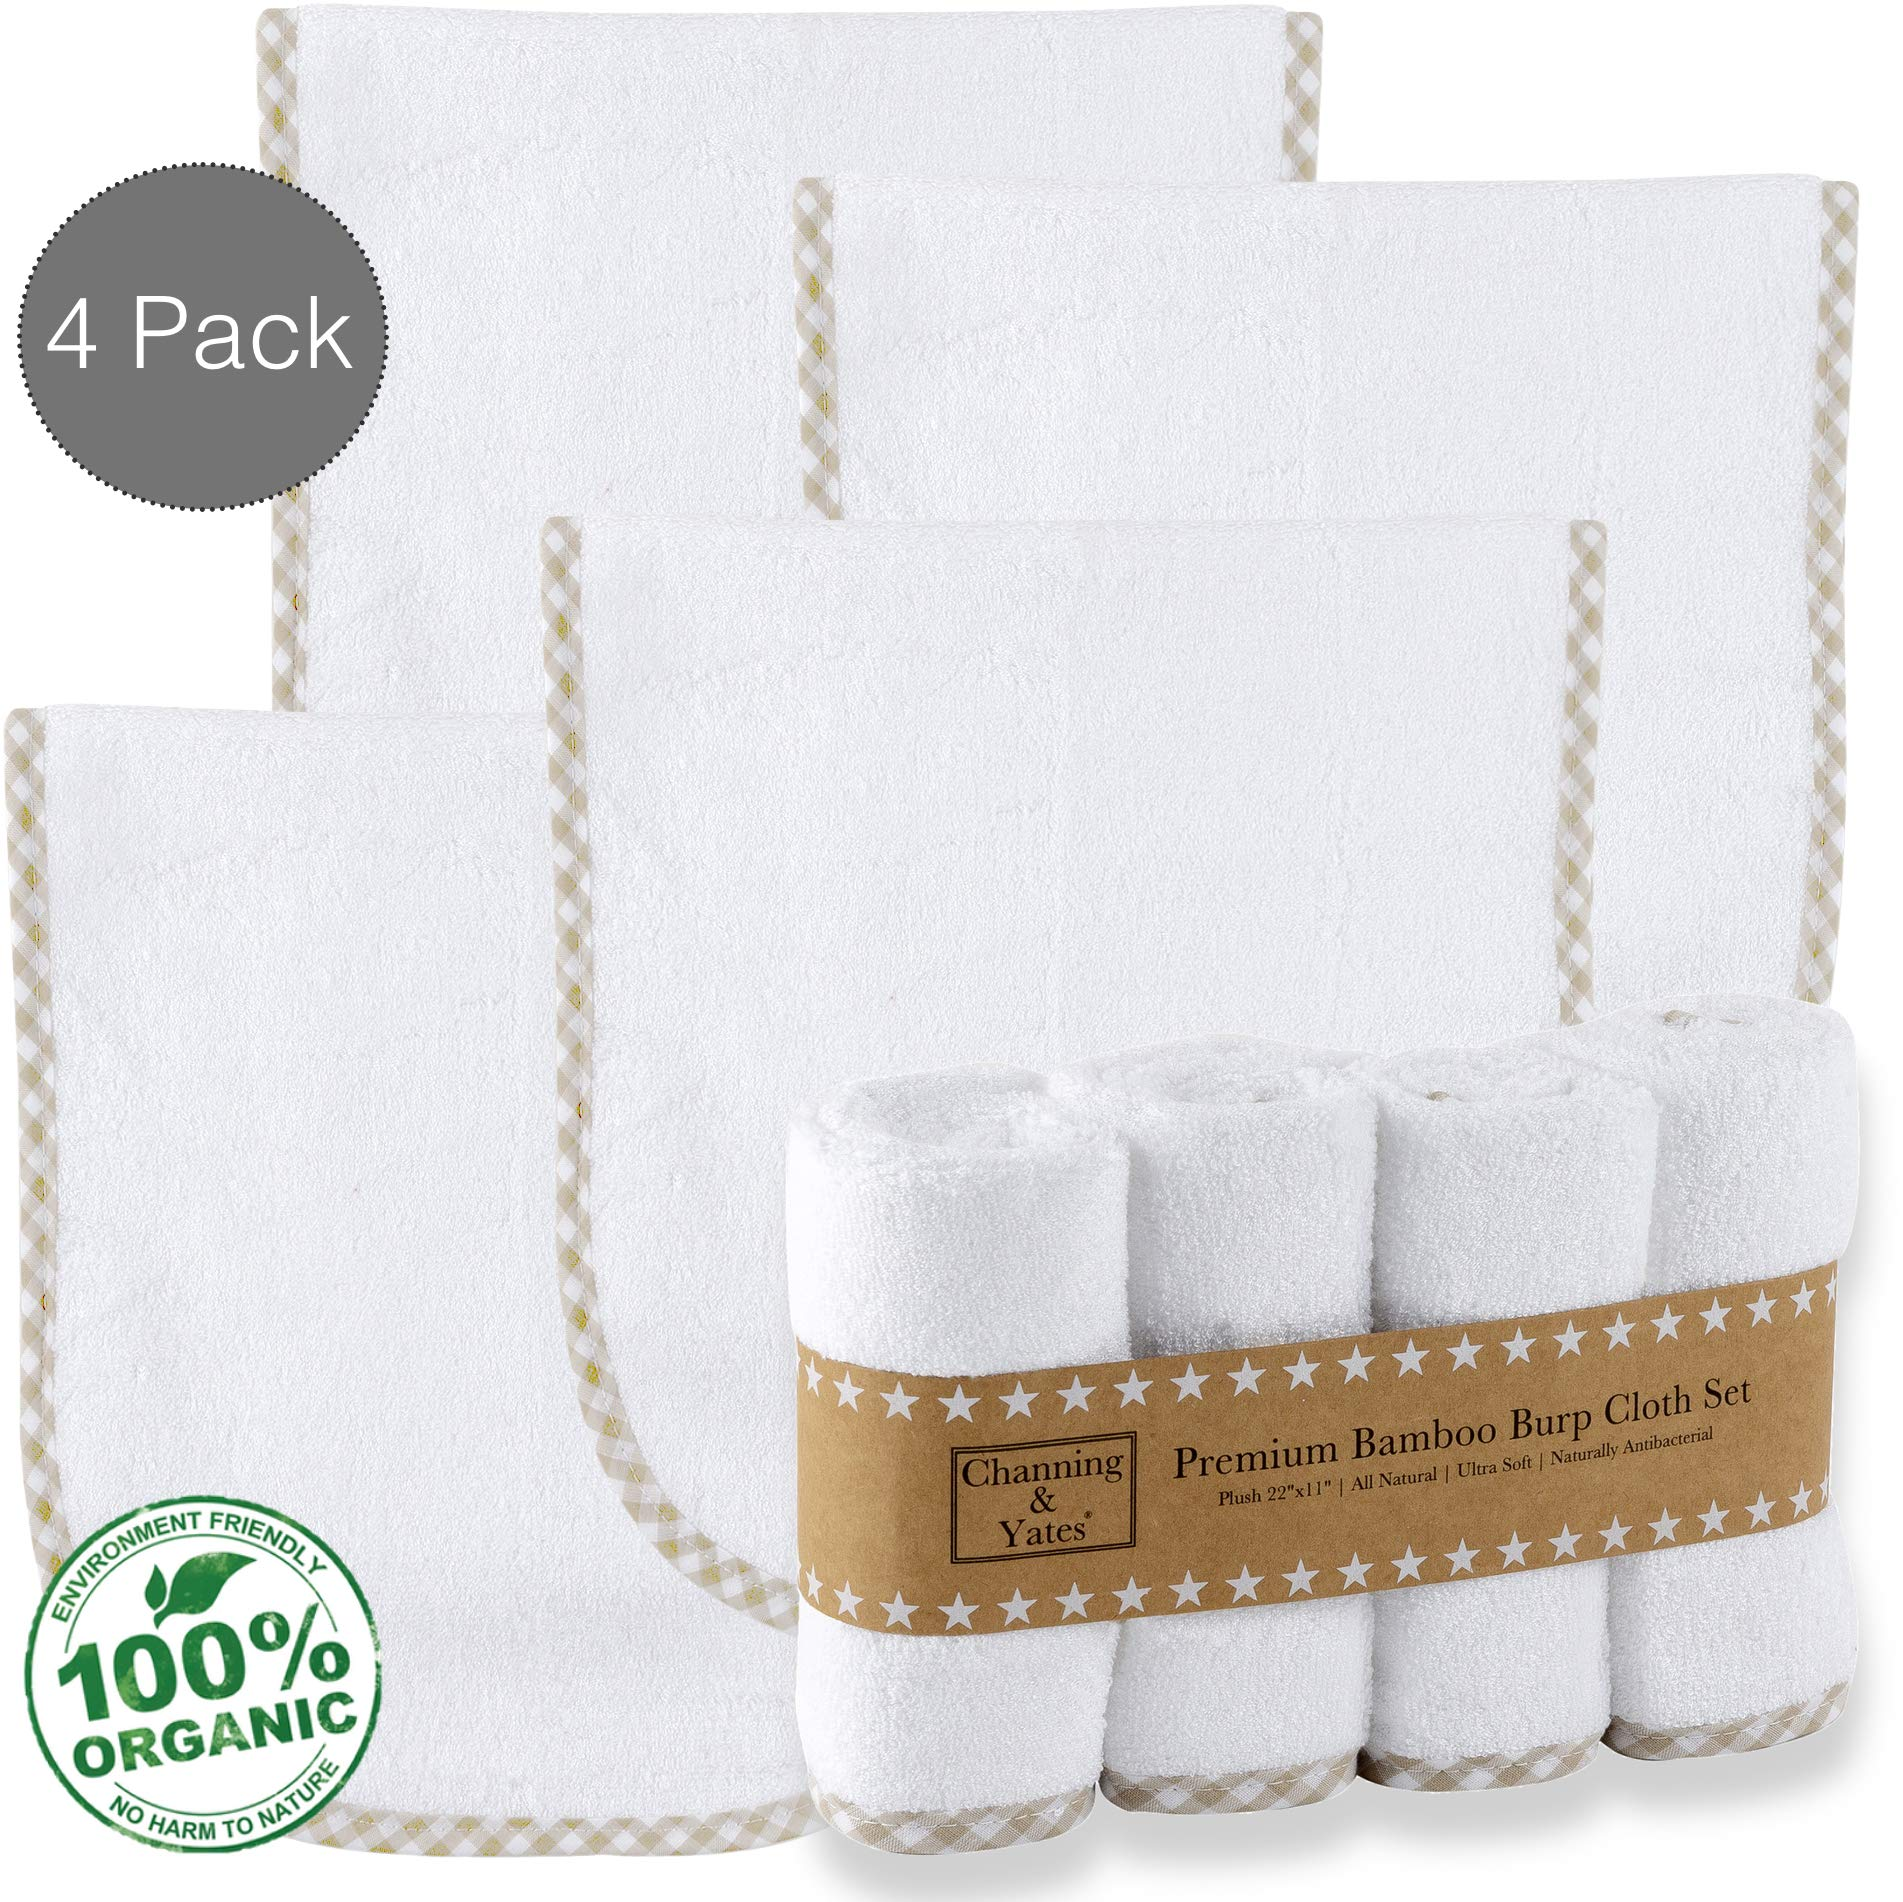 Premium Certified Organic Bamboo Baby Burp Cloths Boy or Girl (4-Pack) by Channing & Yates - Baby Burp Cloths For Eczema - Face Washcloths - Thick & Soft - 22 x 11in - Boutique Baby Must Haves (Beige) by Channing & Yates